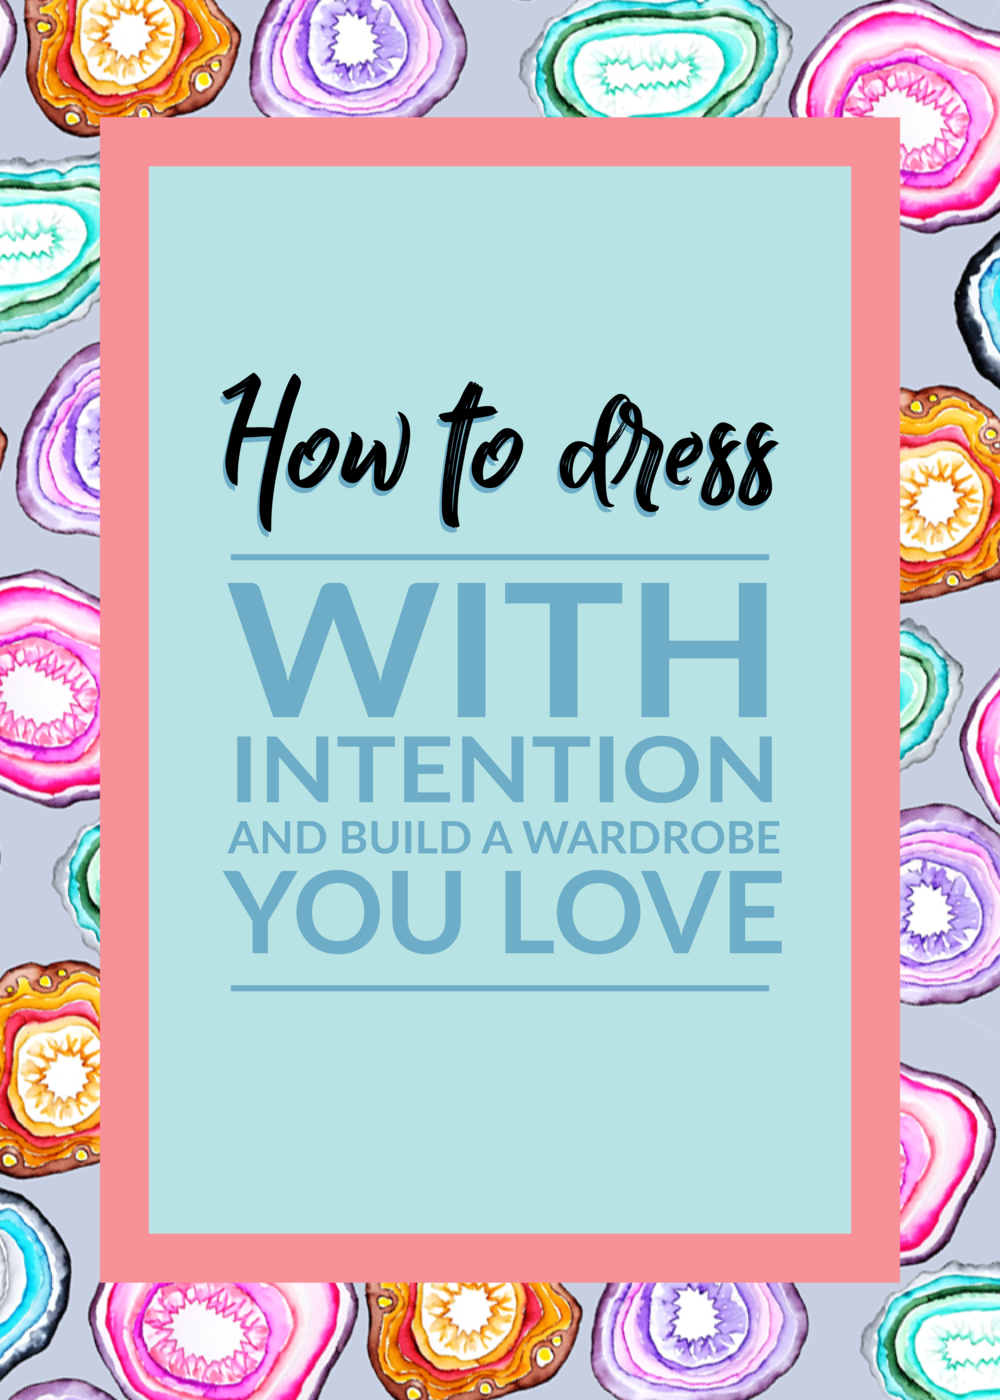 How to dress with intention and build a wardrobe you love by Making Something Rad